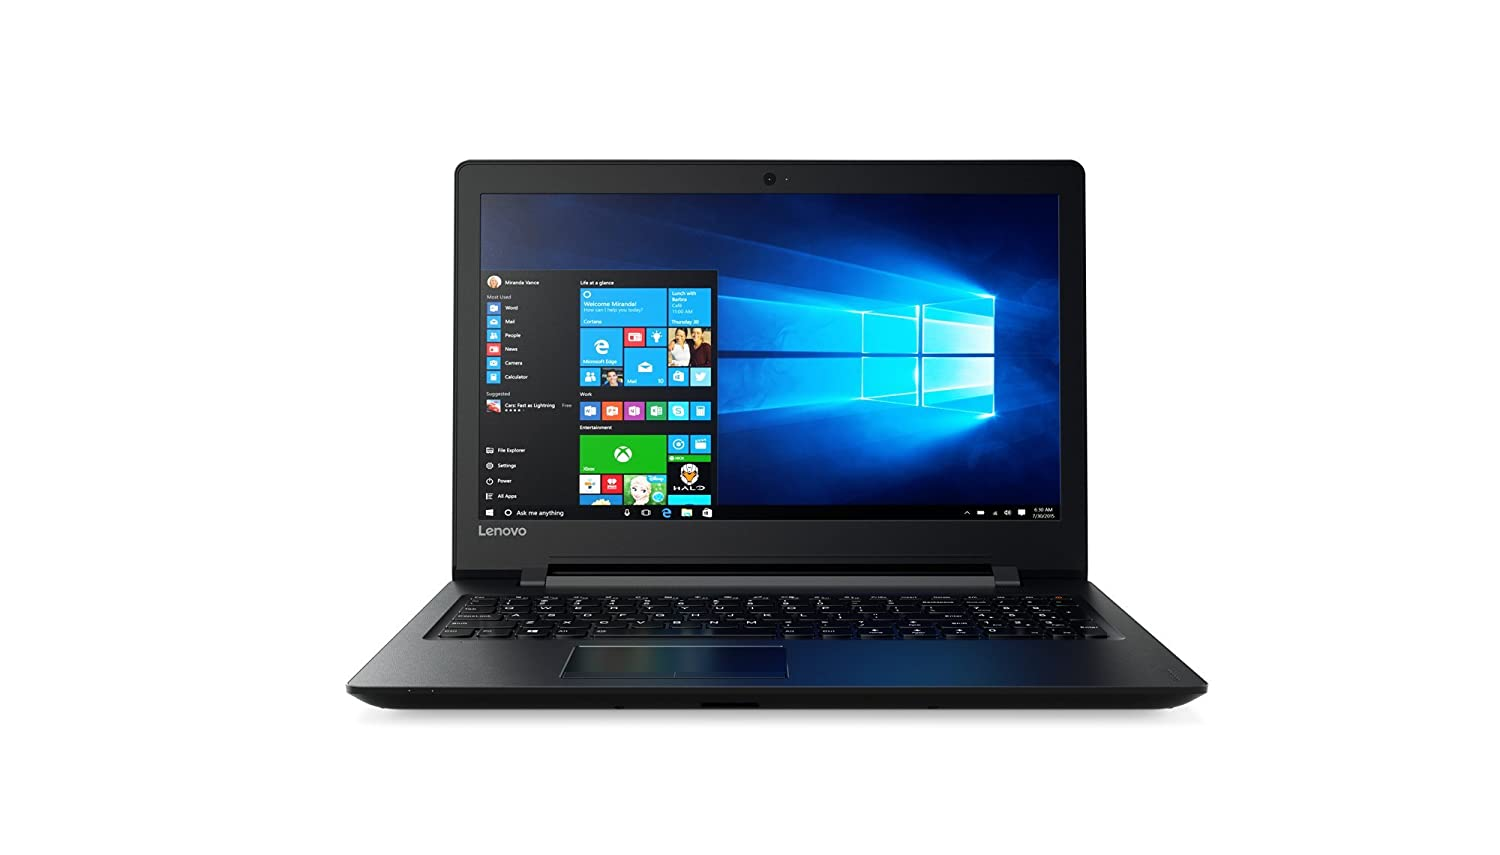 Lenovo Ideapad 110 80TJ00BNIH 15.6-inch Laptop (AMD A8-7410/8GB/1TB/DOS/2GB Graphics)